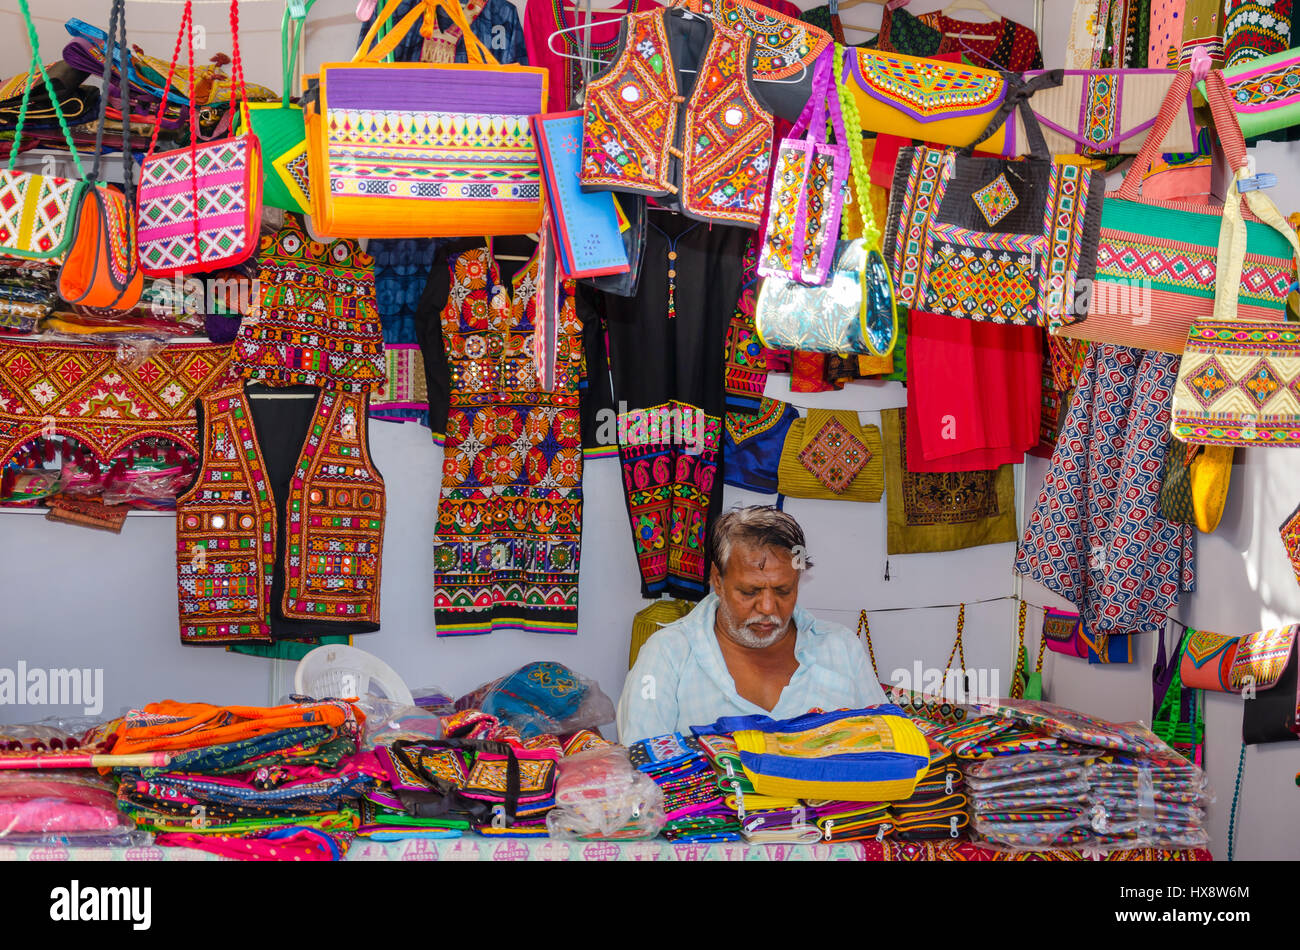 KUTCH, GUJARAT, INDIA - DECEMBER 27, 2016: An unidentified handicraft vendor in his traditional street shop selling - Stock Image